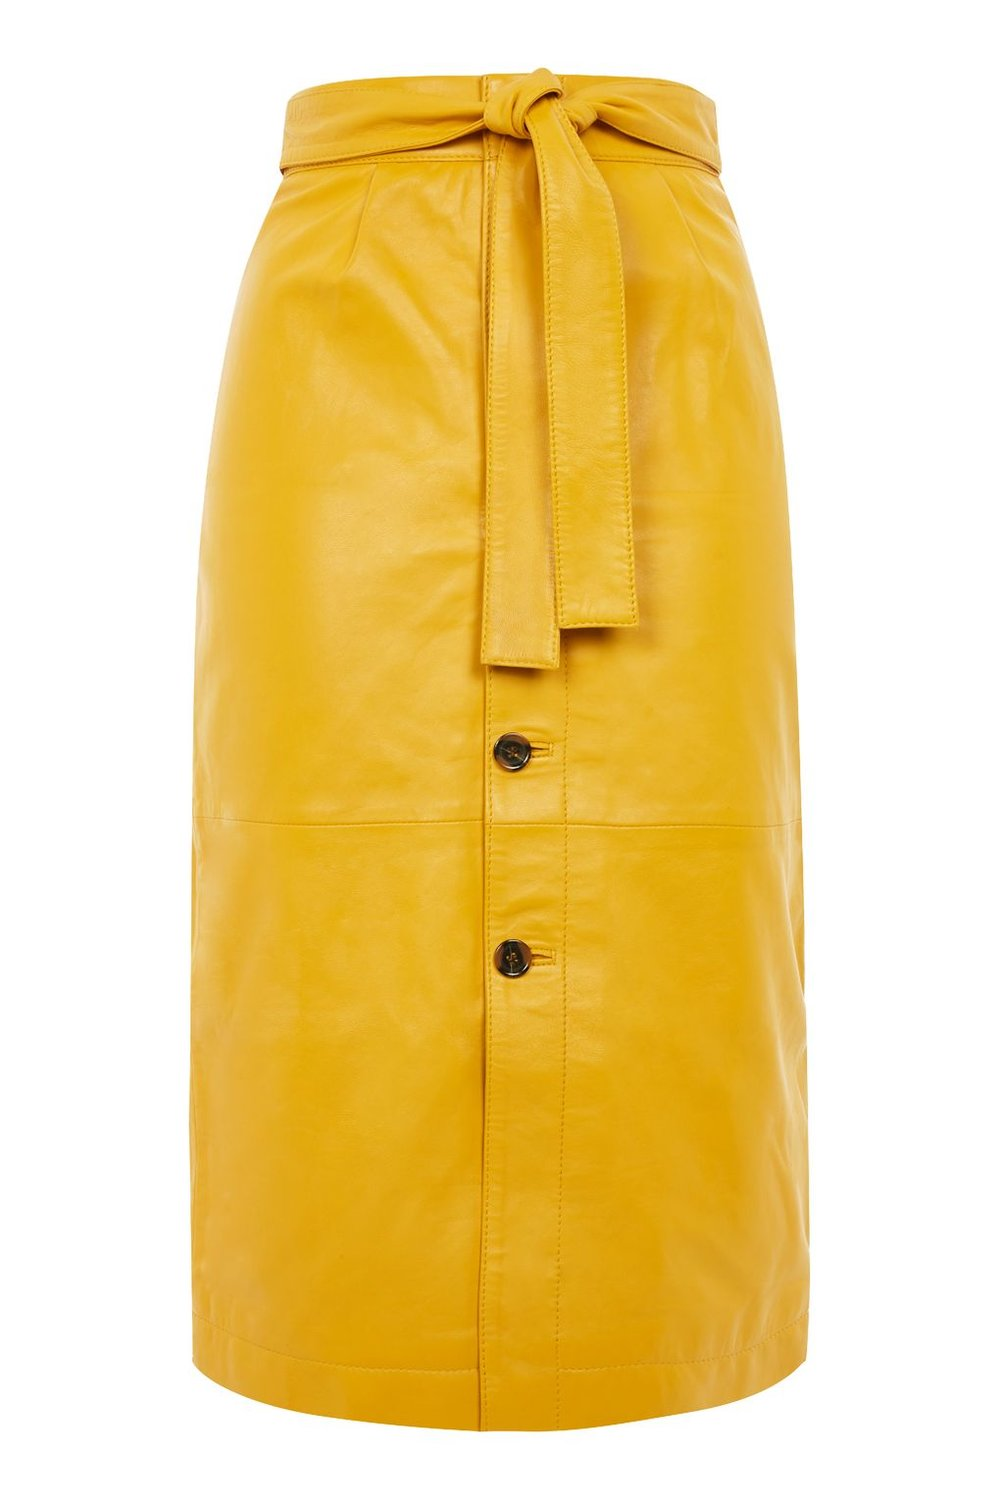 2. Midi skirt, £125 at Topshop